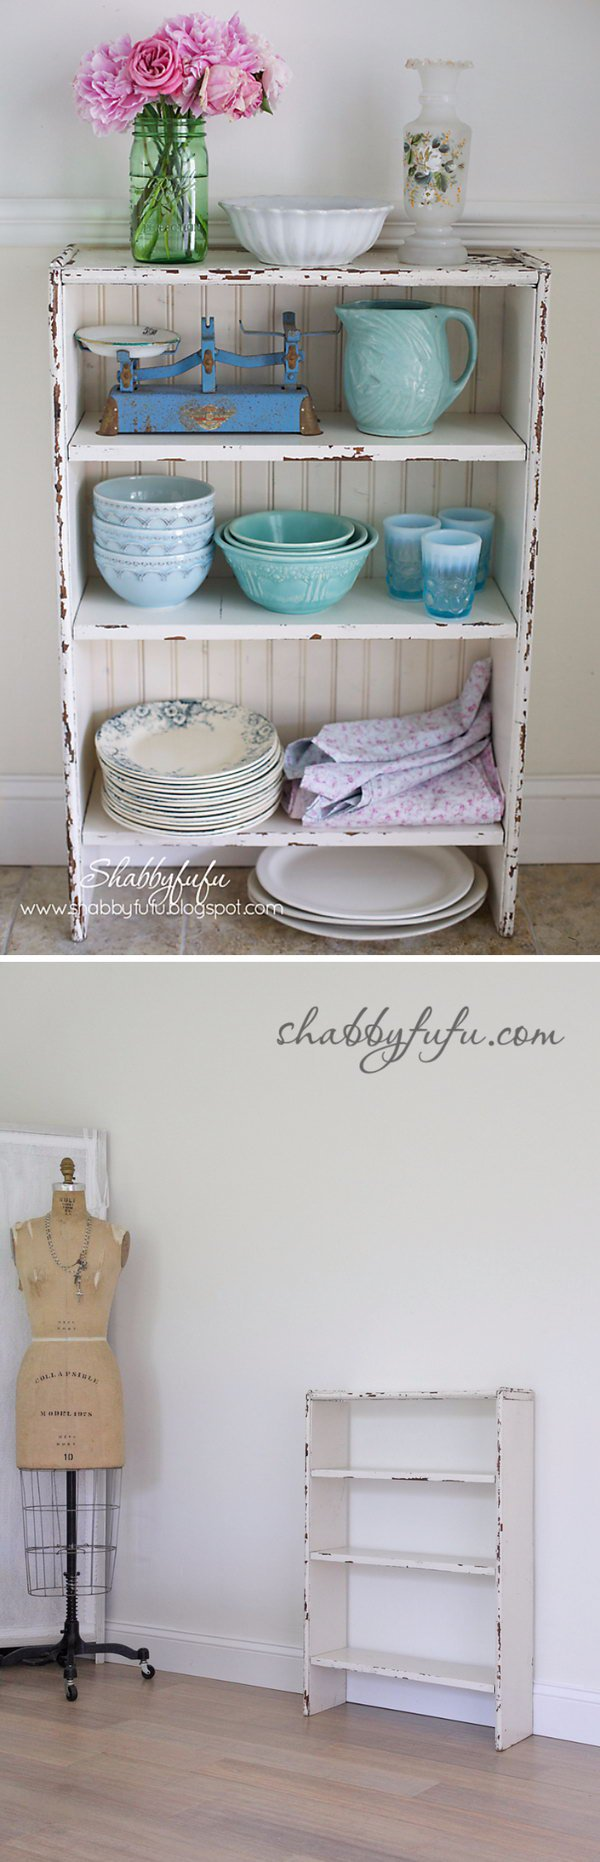 awesome diy shabby chic furniture projects. Black Bedroom Furniture Sets. Home Design Ideas